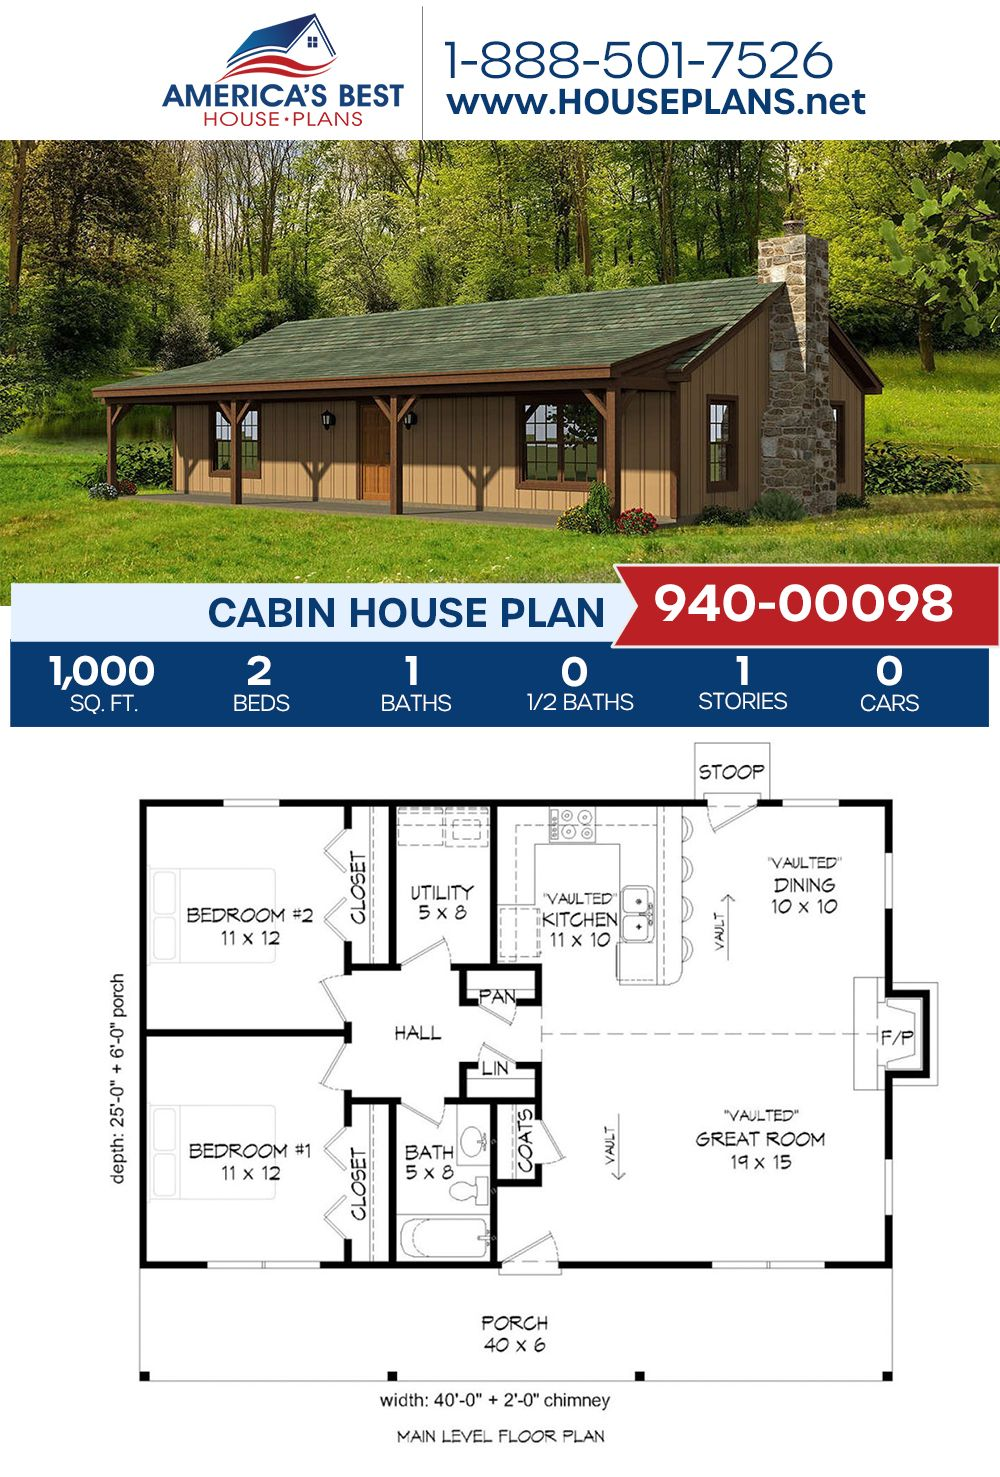 House Plan 940 00098 Cabin Plan 1 000 Square Feet 2 Bedrooms 1 Bathroom Cabin House Plans House Plans Cabin Homes